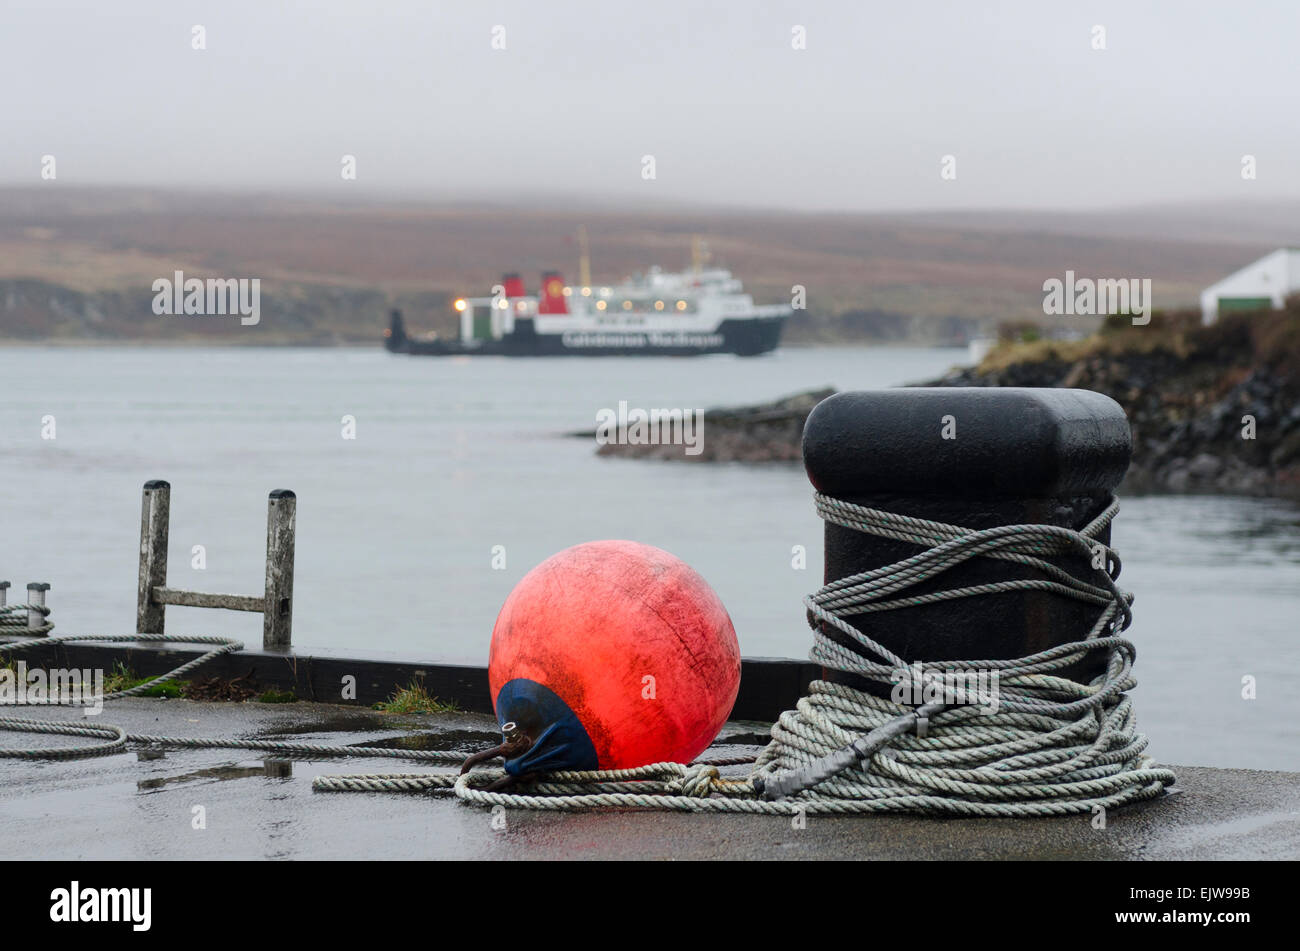 bunnahabhain distillery warehouse mooring - Stock Image